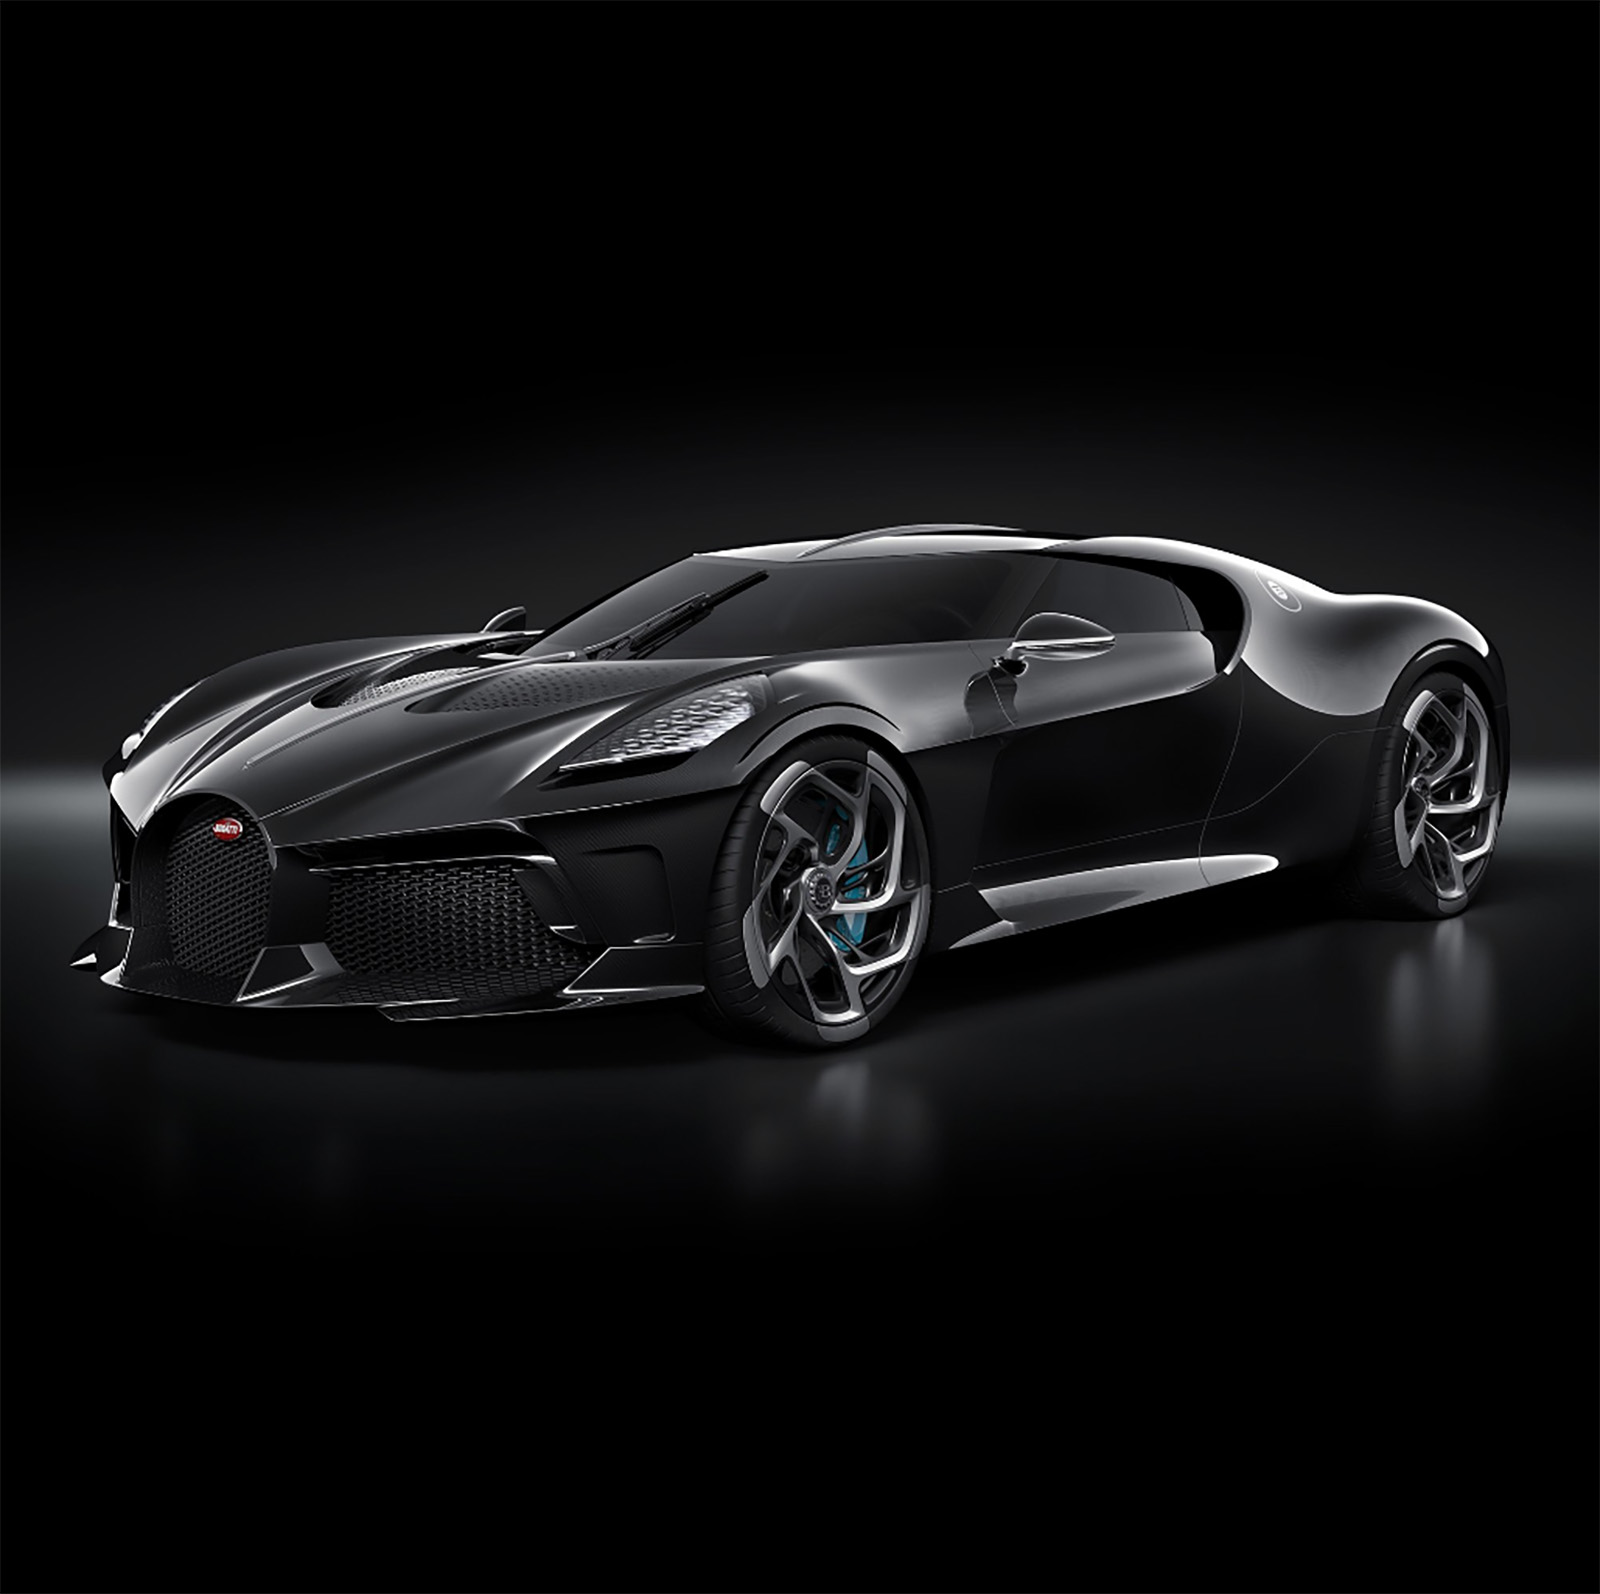 At almost $19 million, this Bugatti is the most expensive new car ever sold  - CNN